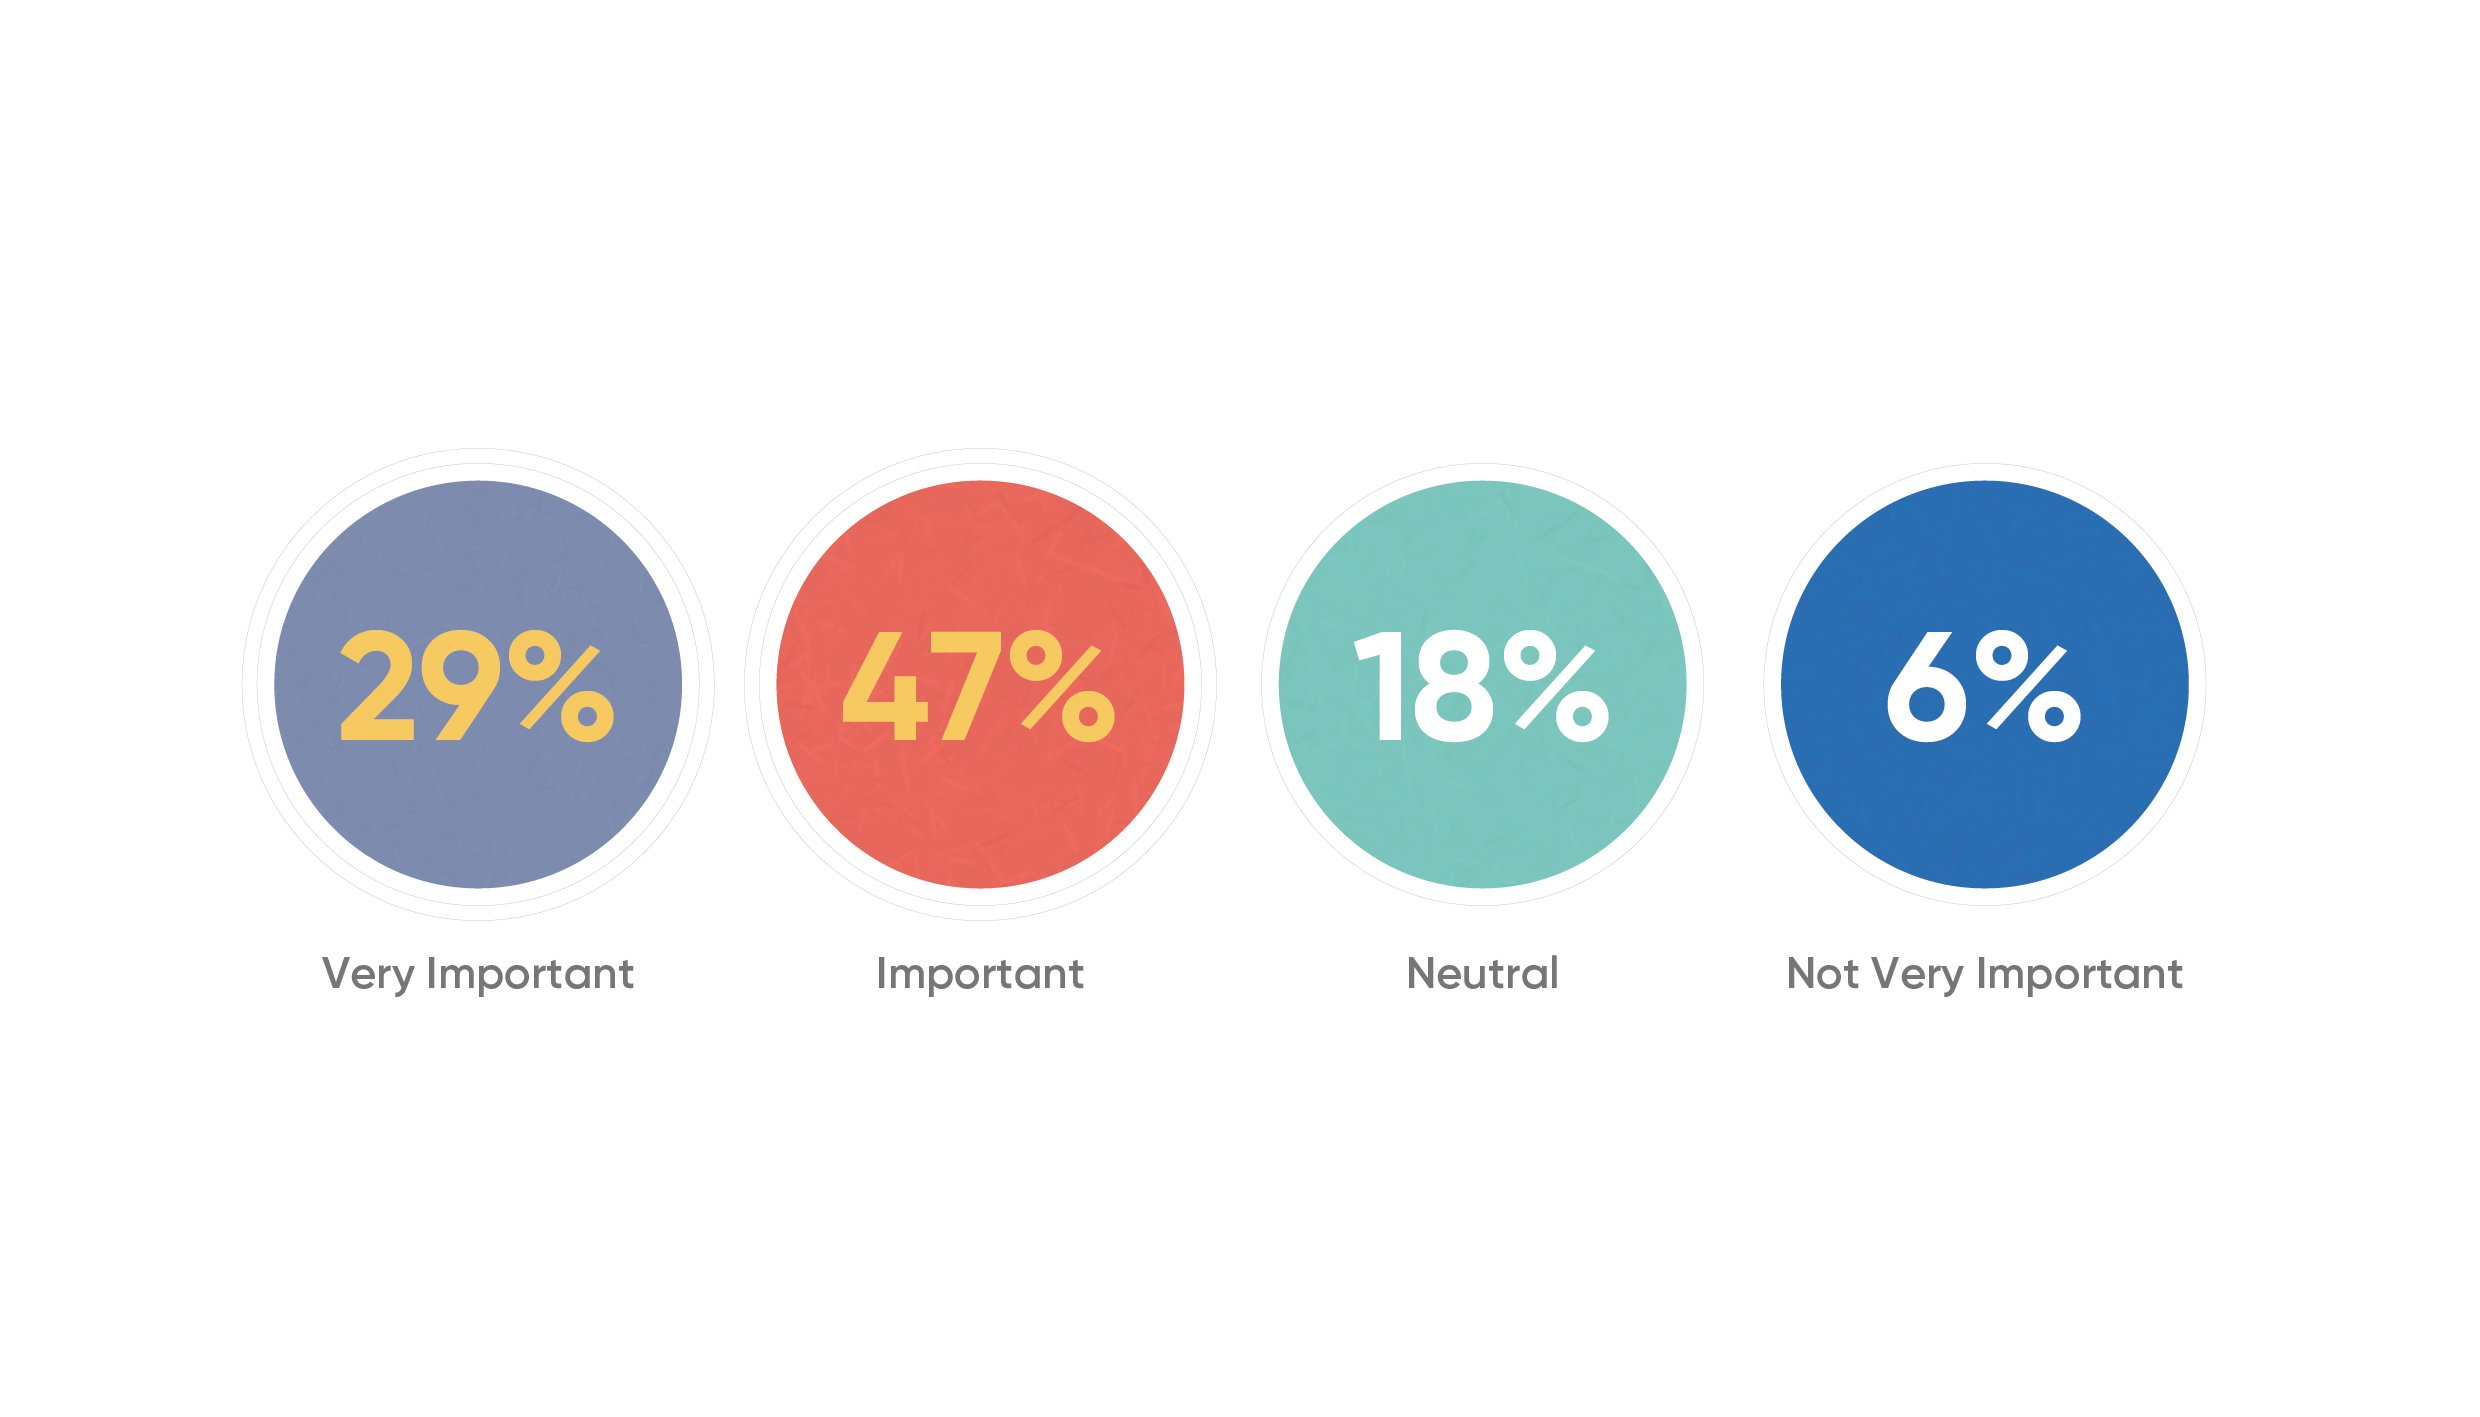 graphic displaying study data on mentorship showing 76% of people find mentorship very important or important.